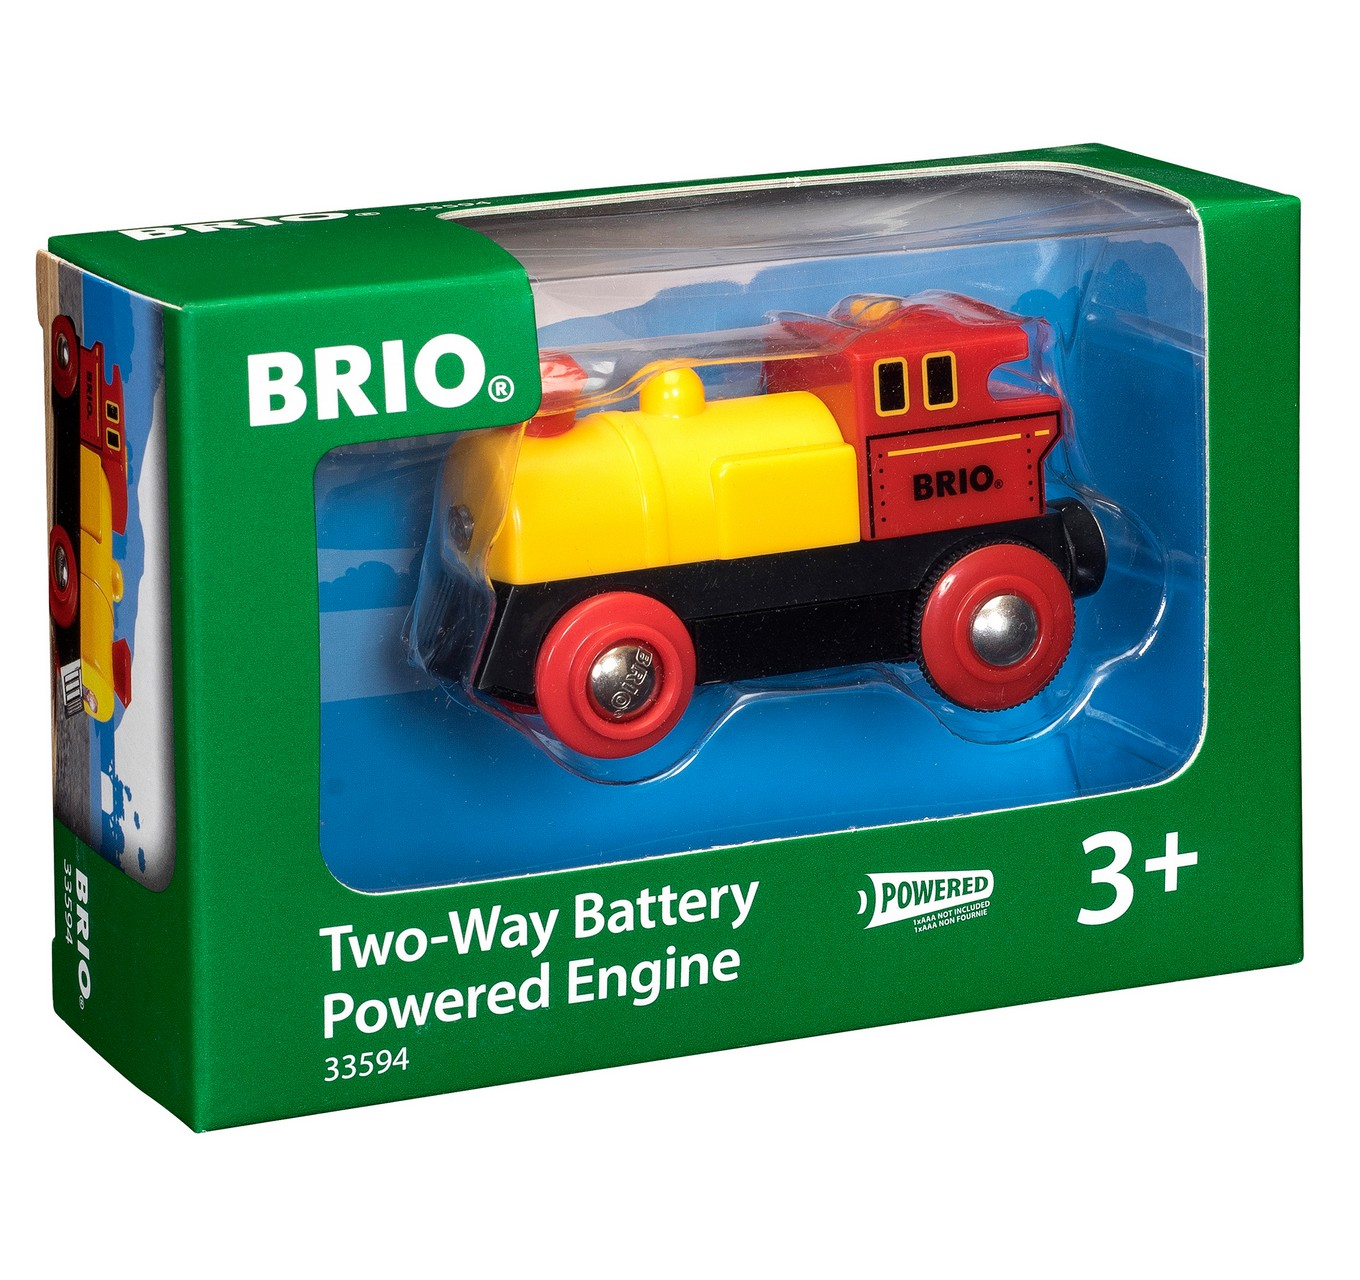 2 Way Battery Powered Engine